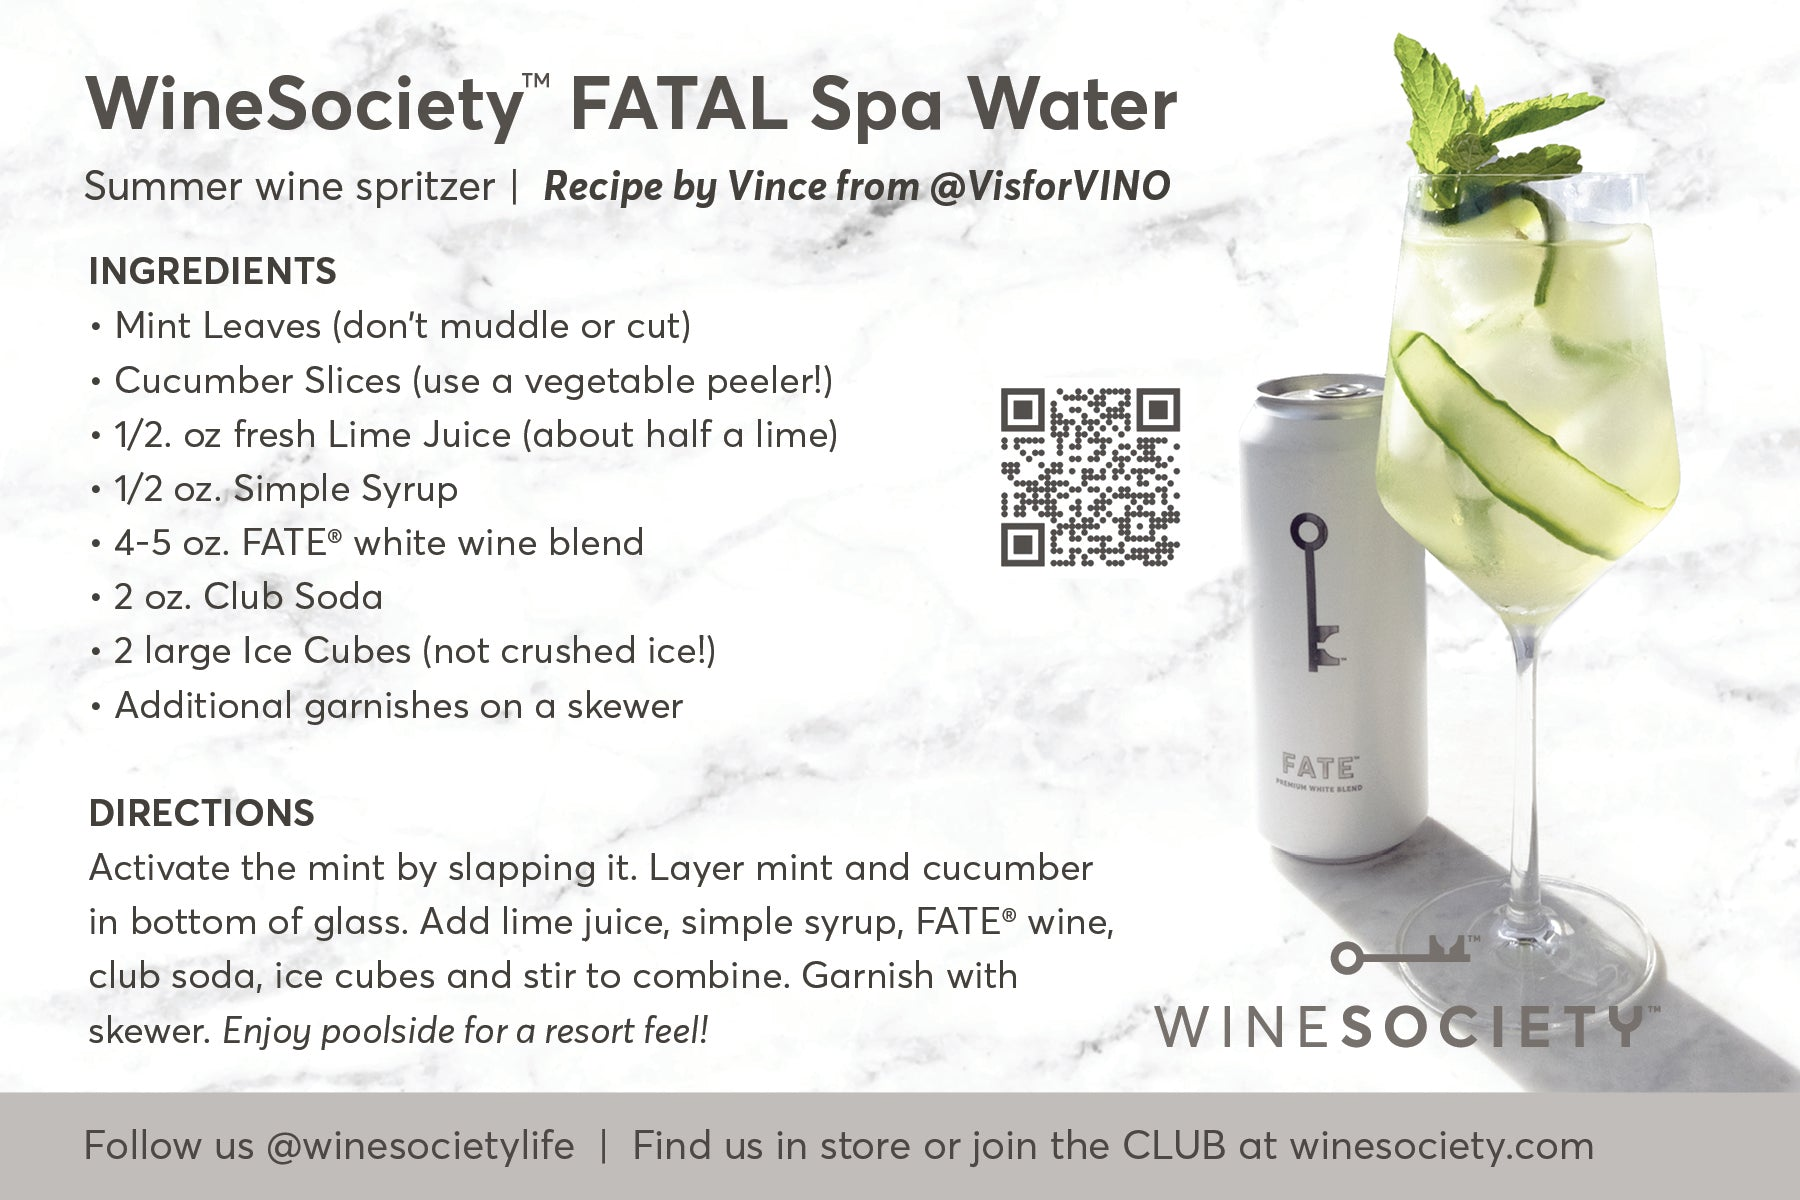 WineSociety 4x6 Recipe Card FATAL Spa Water Cocktail